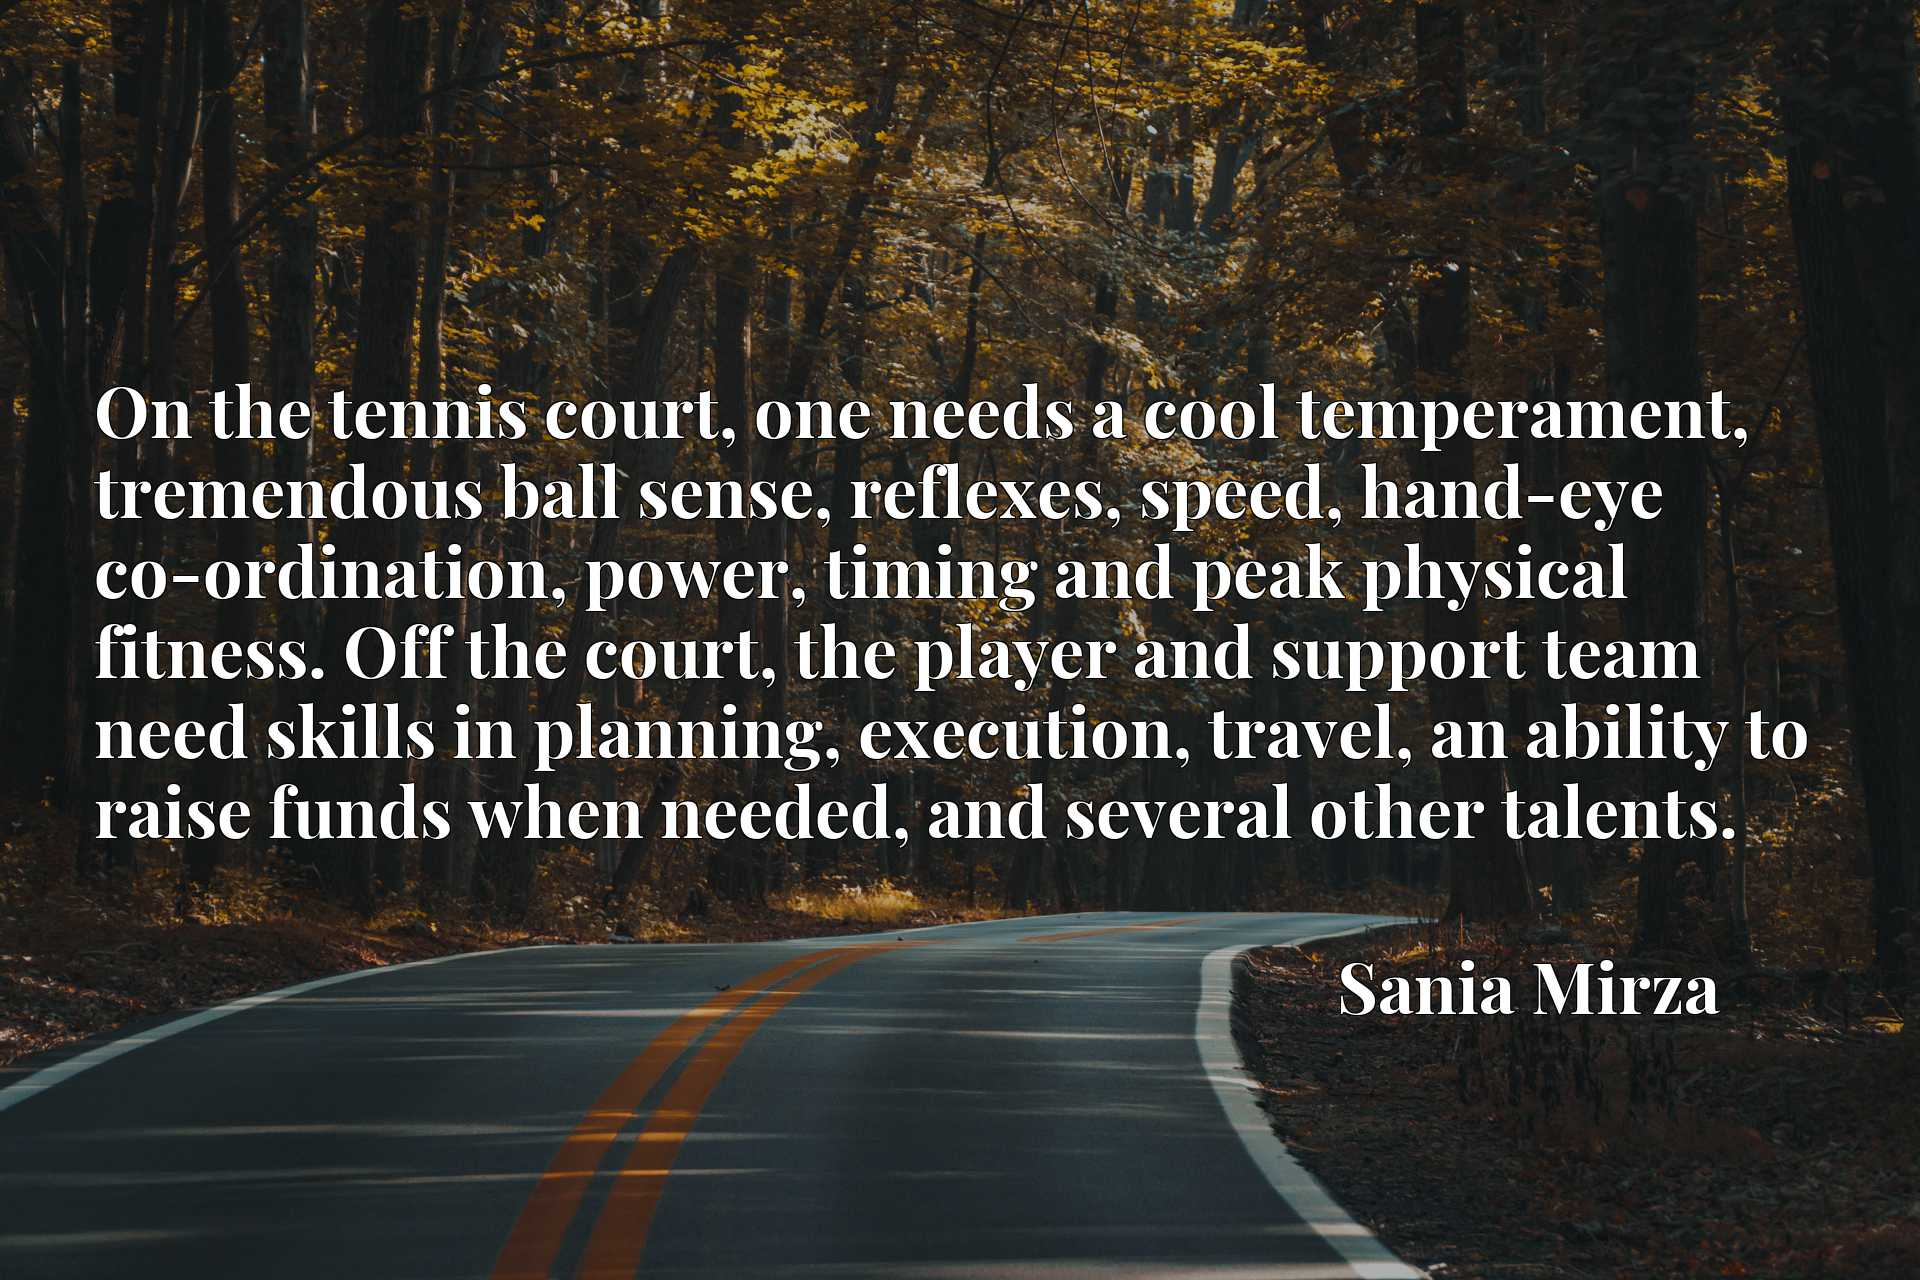 On the tennis court, one needs a cool temperament, tremendous ball sense, reflexes, speed, hand-eye co-ordination, power, timing and peak physical fitness. Off the court, the player and support team need skills in planning, execution, travel, an ability to raise funds when needed, and several other talents.